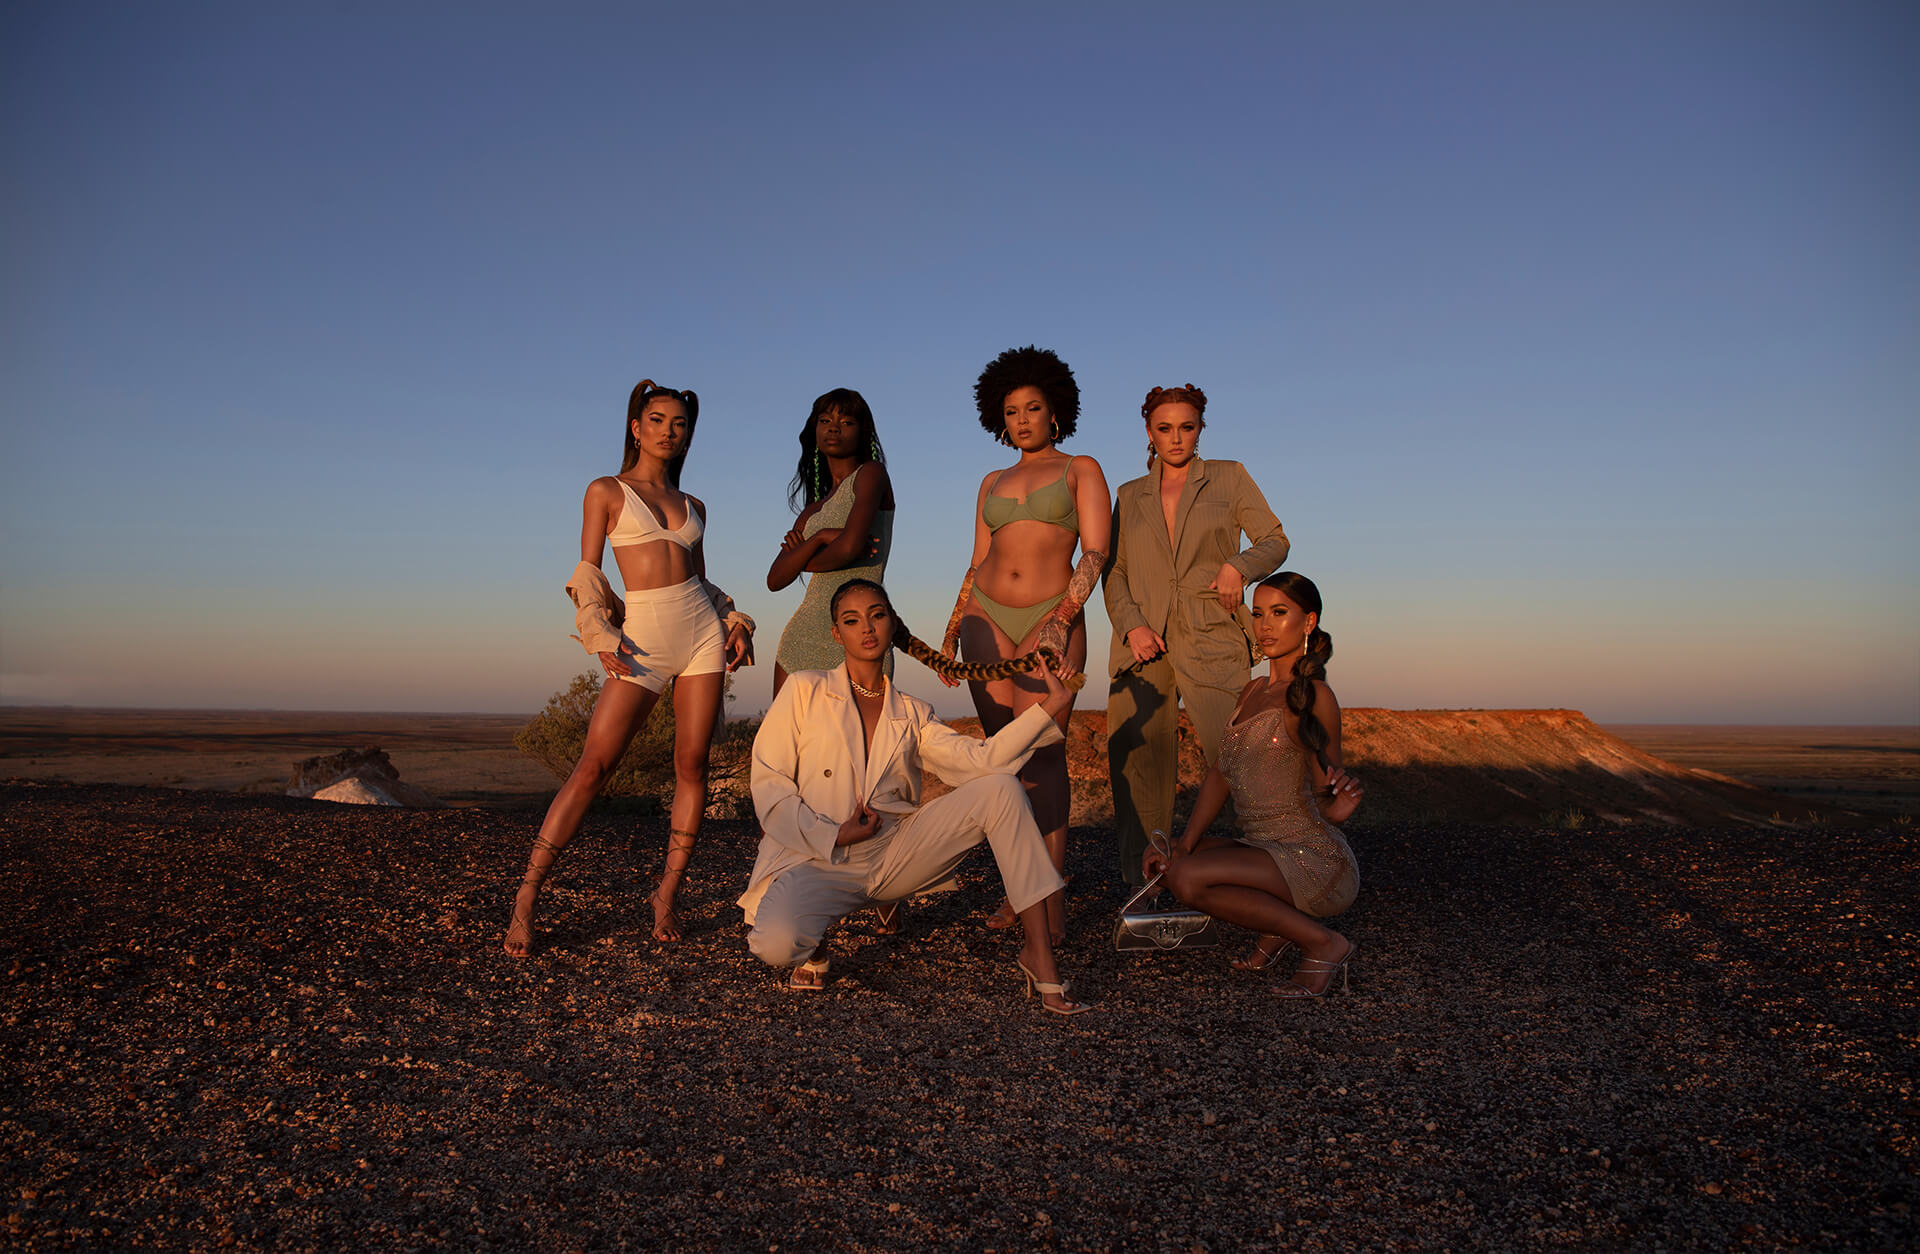 Desert Dreams Lookbook Image 16 Desktop